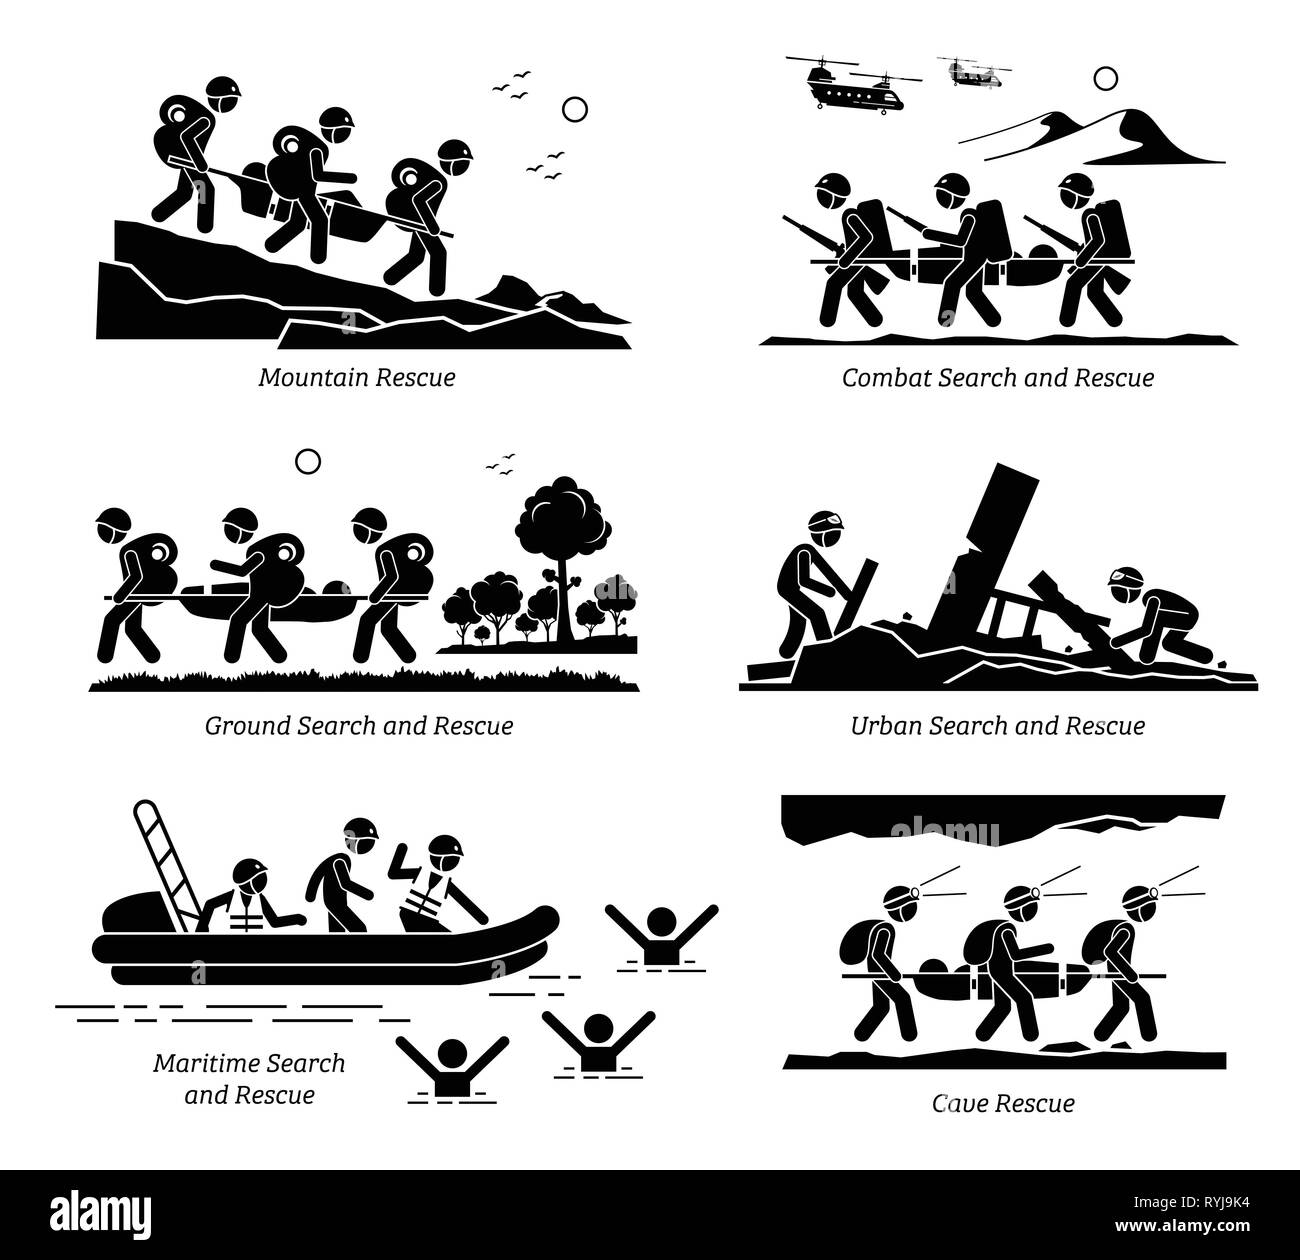 Search and rescue operations. Illustrations depict SAR operation on mountain, combat, ground, urban, maritime, water, and cave rescue. - Stock Vector